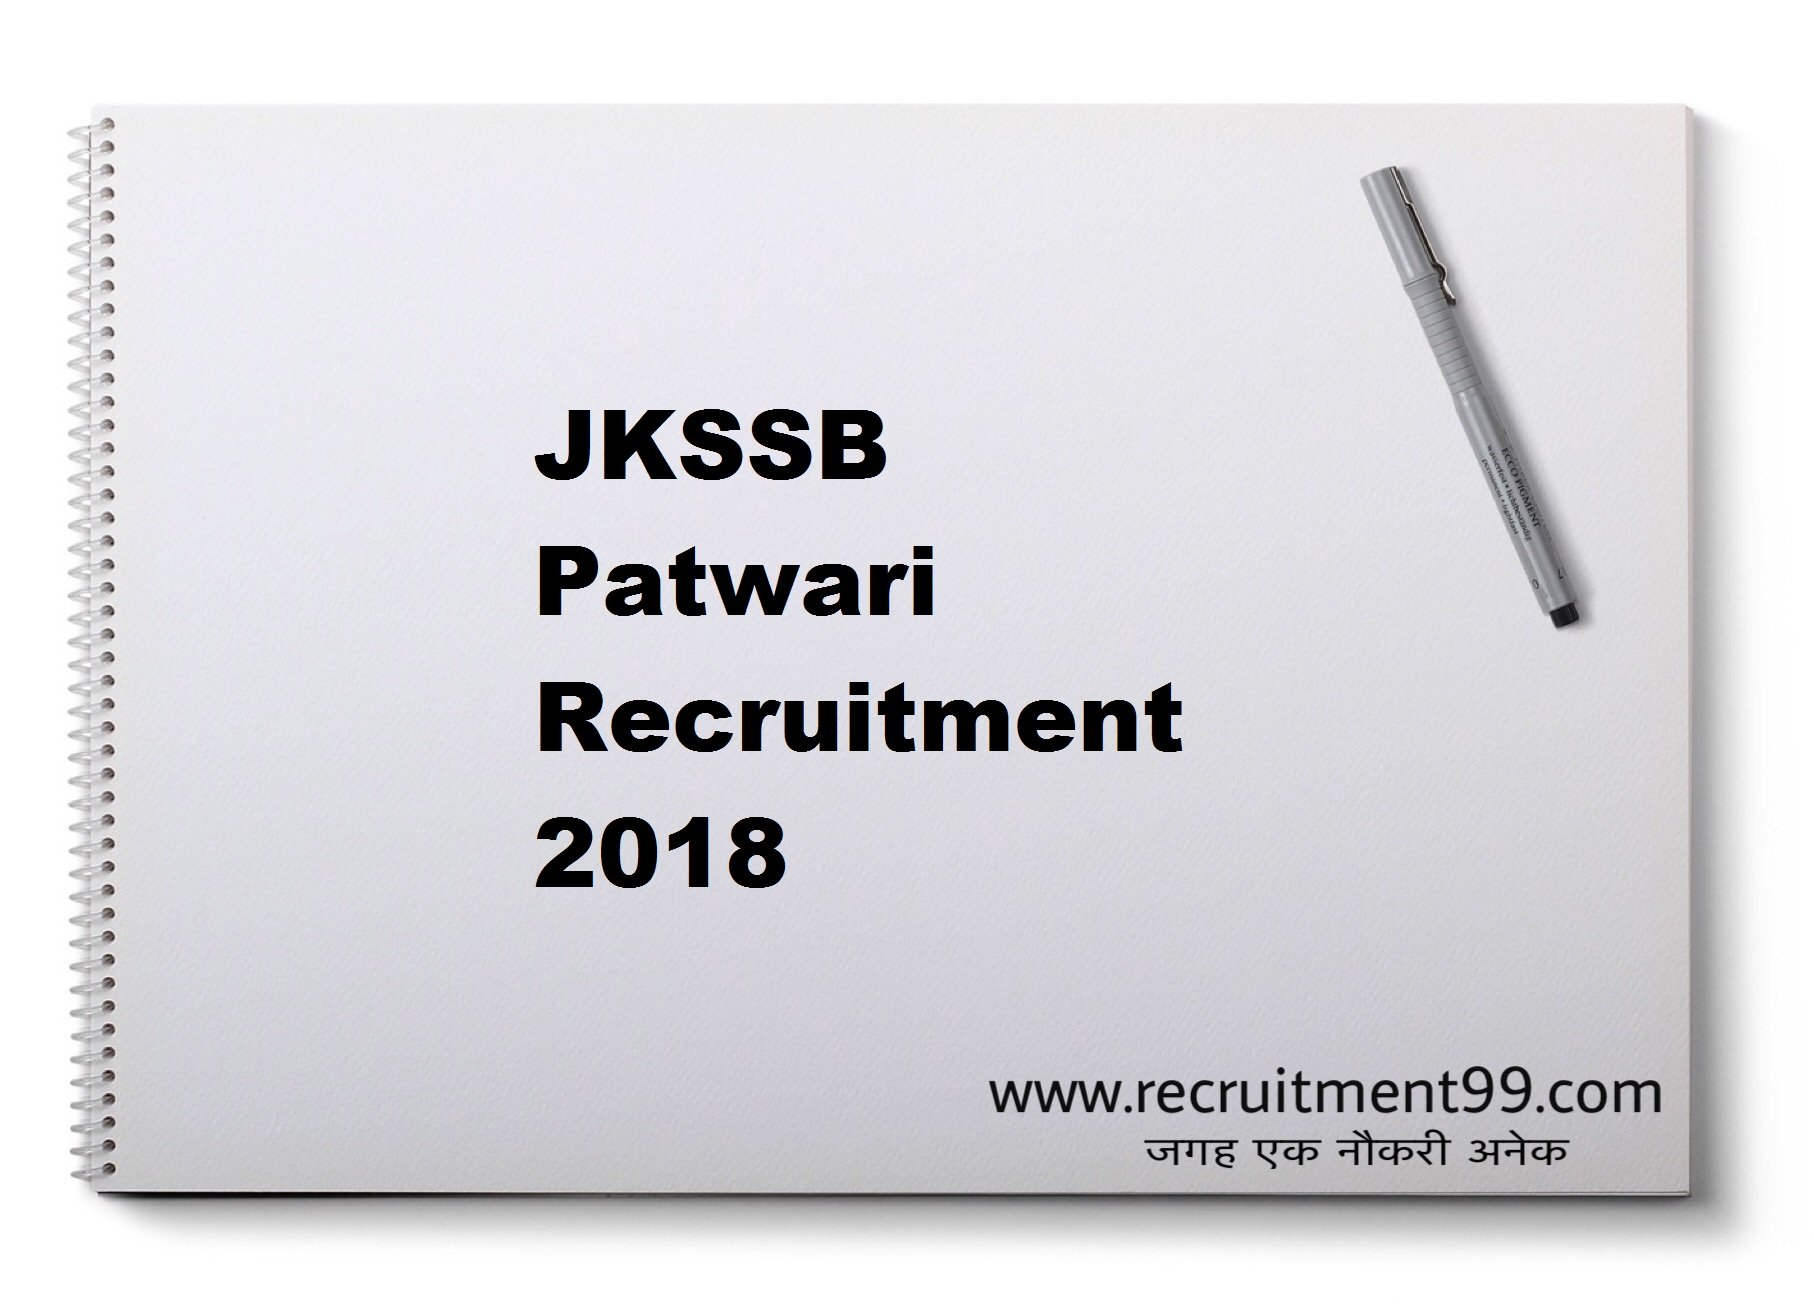 JKSSB Patwari Recruitment Admit Card Result 2018